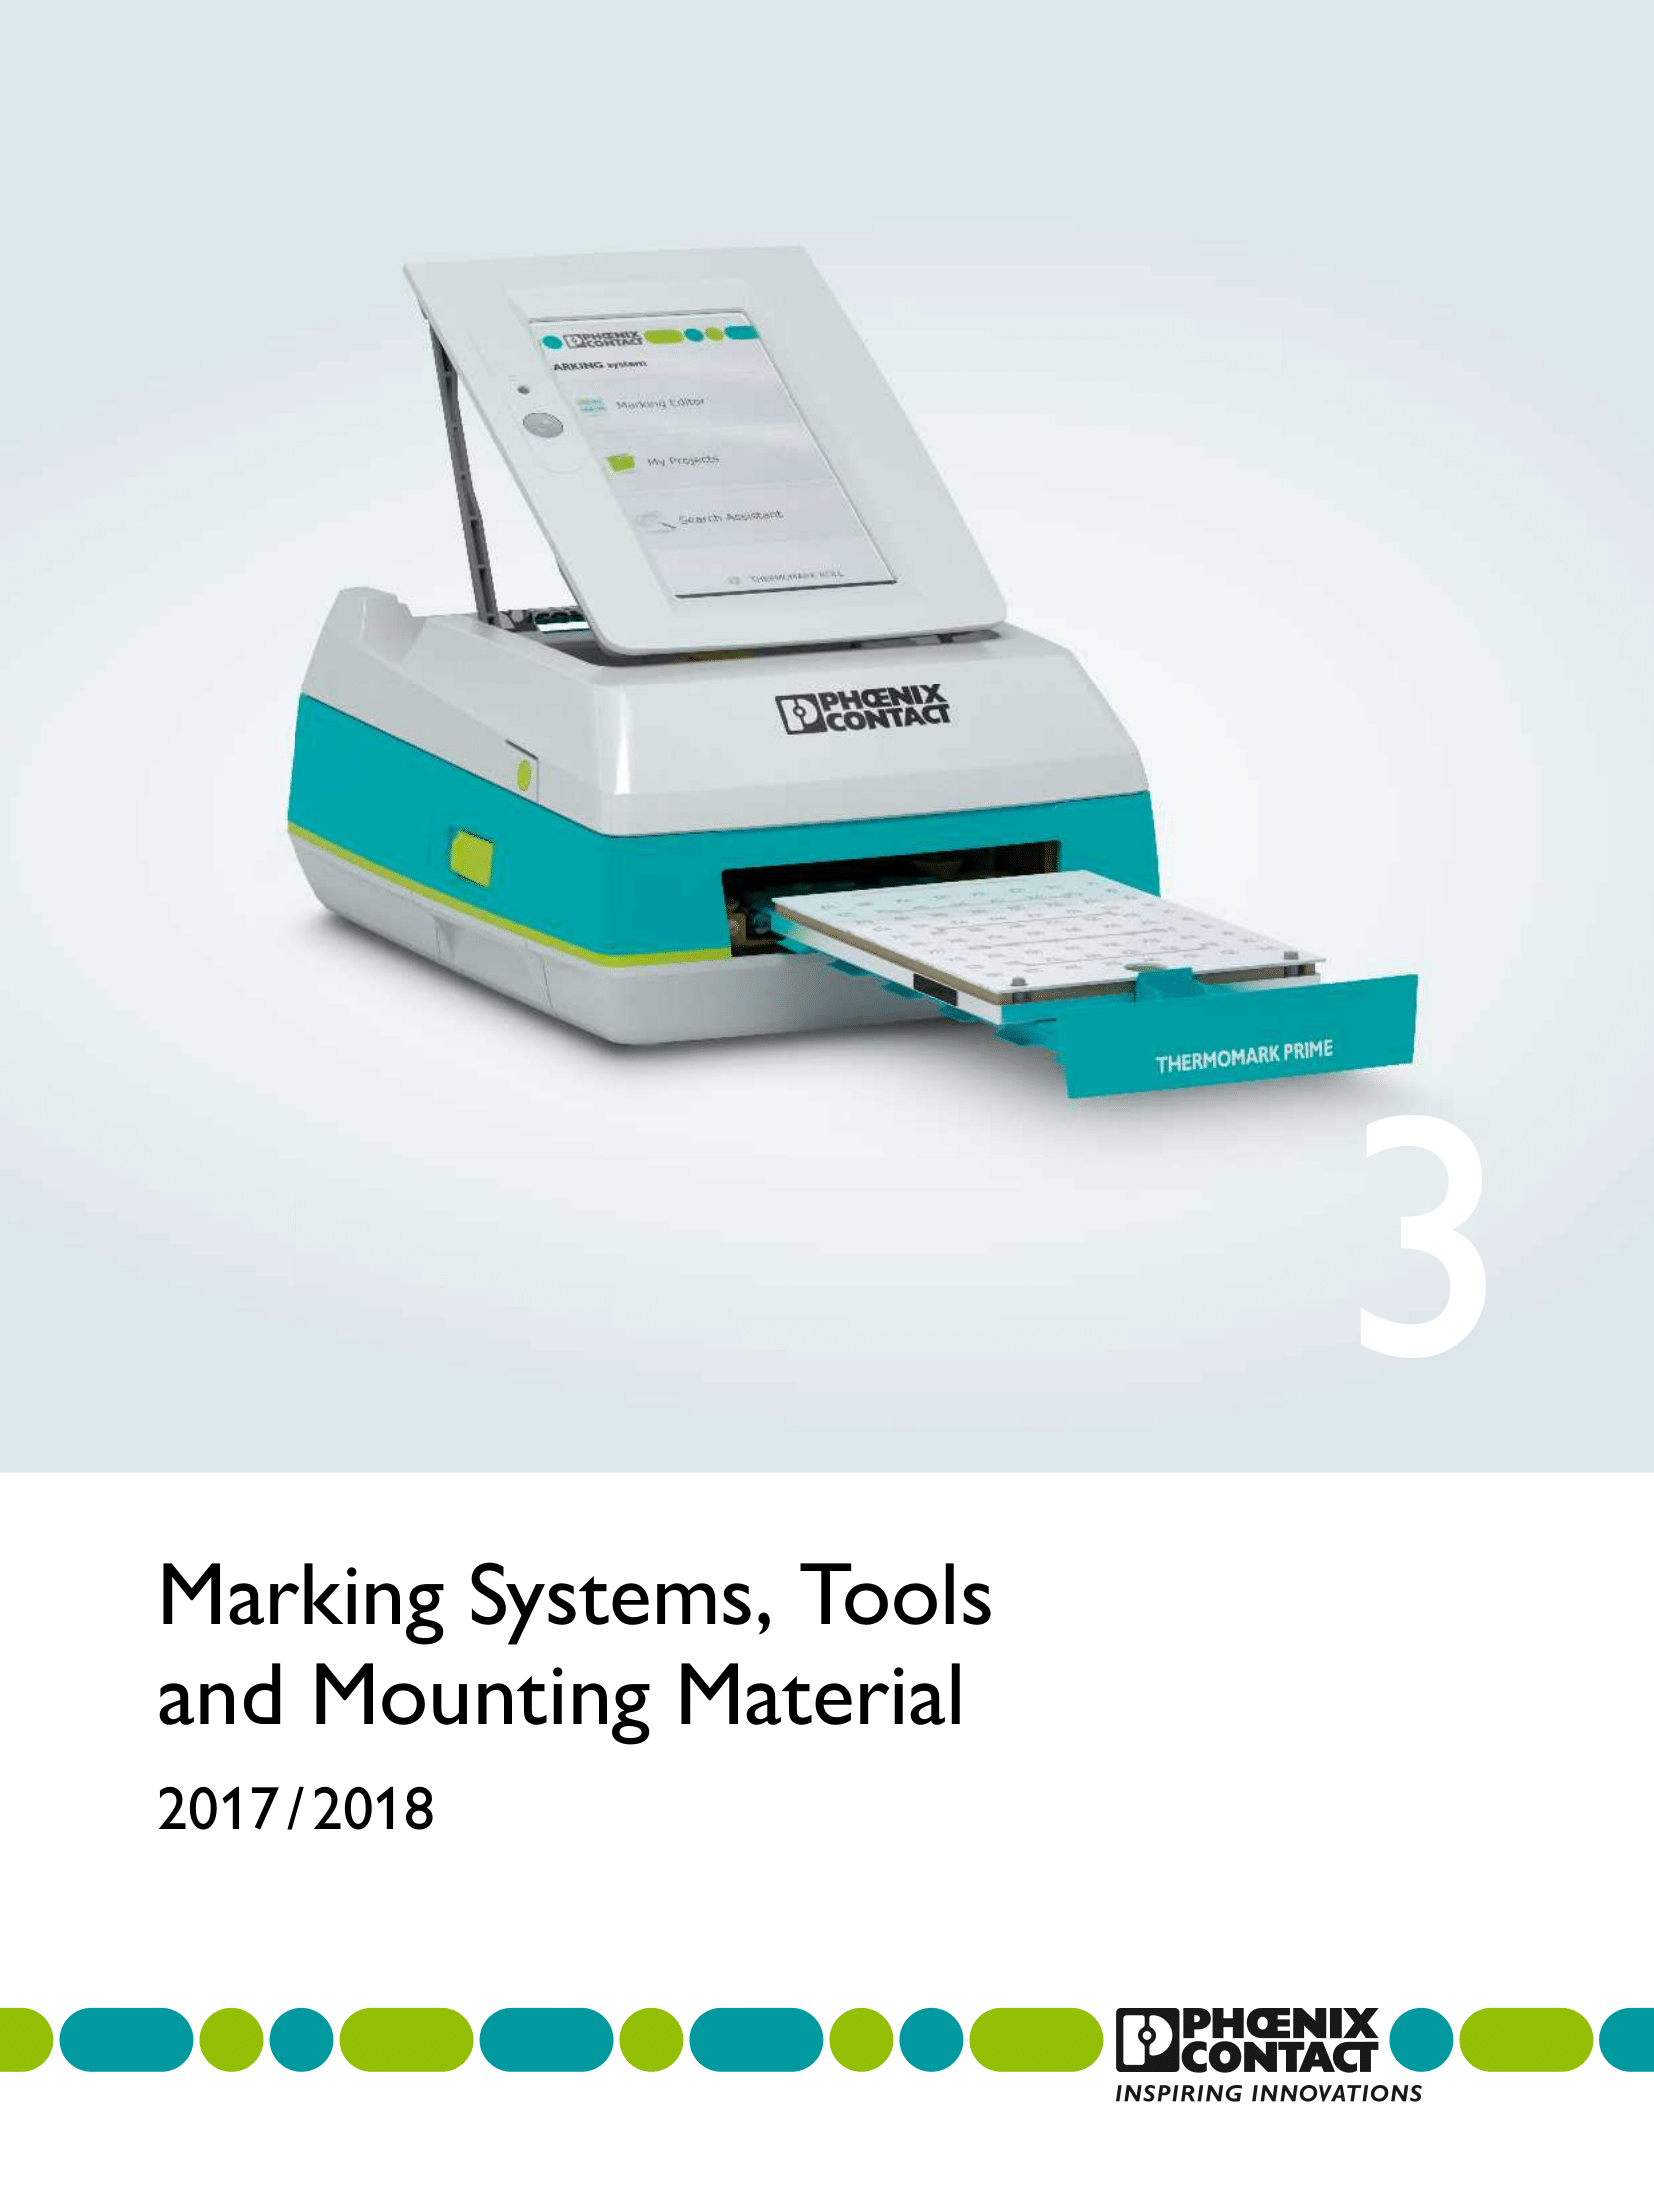 Marking Systems, Tools and Mounting Material